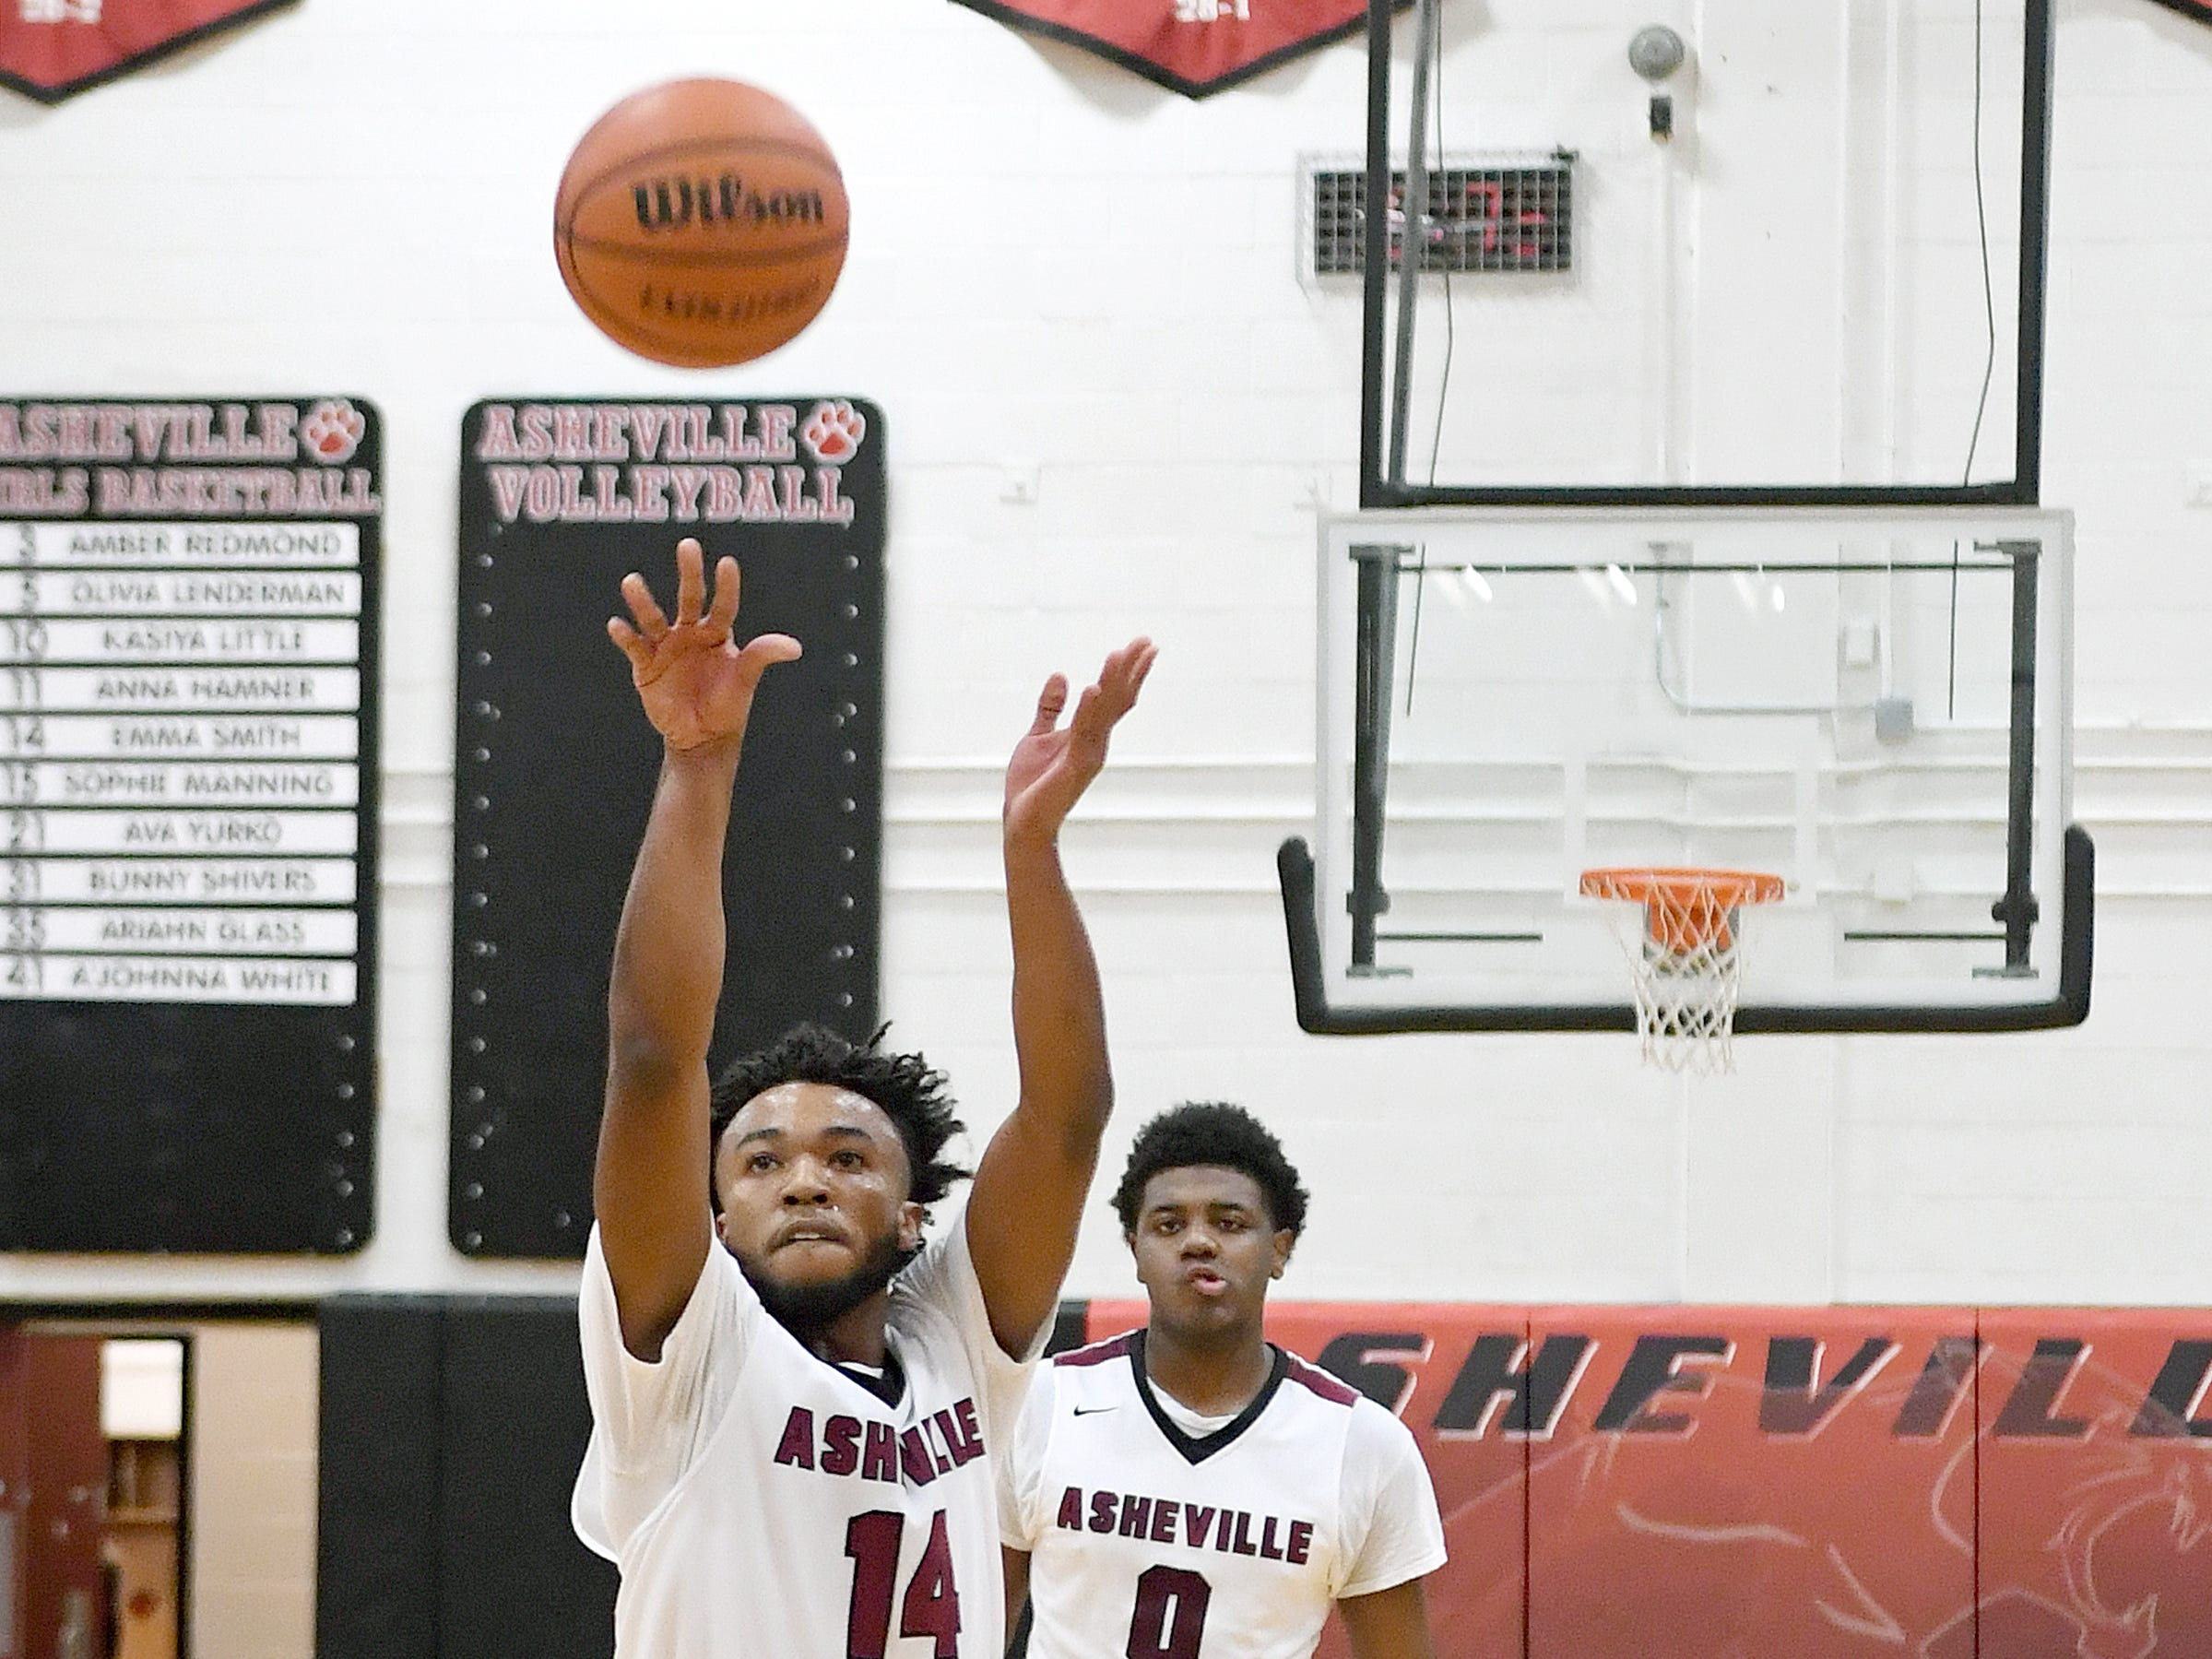 Asheville hosted Reynolds in basketball on Jan. 4, 2019. The Cougars defeated the Rockets 78-70.